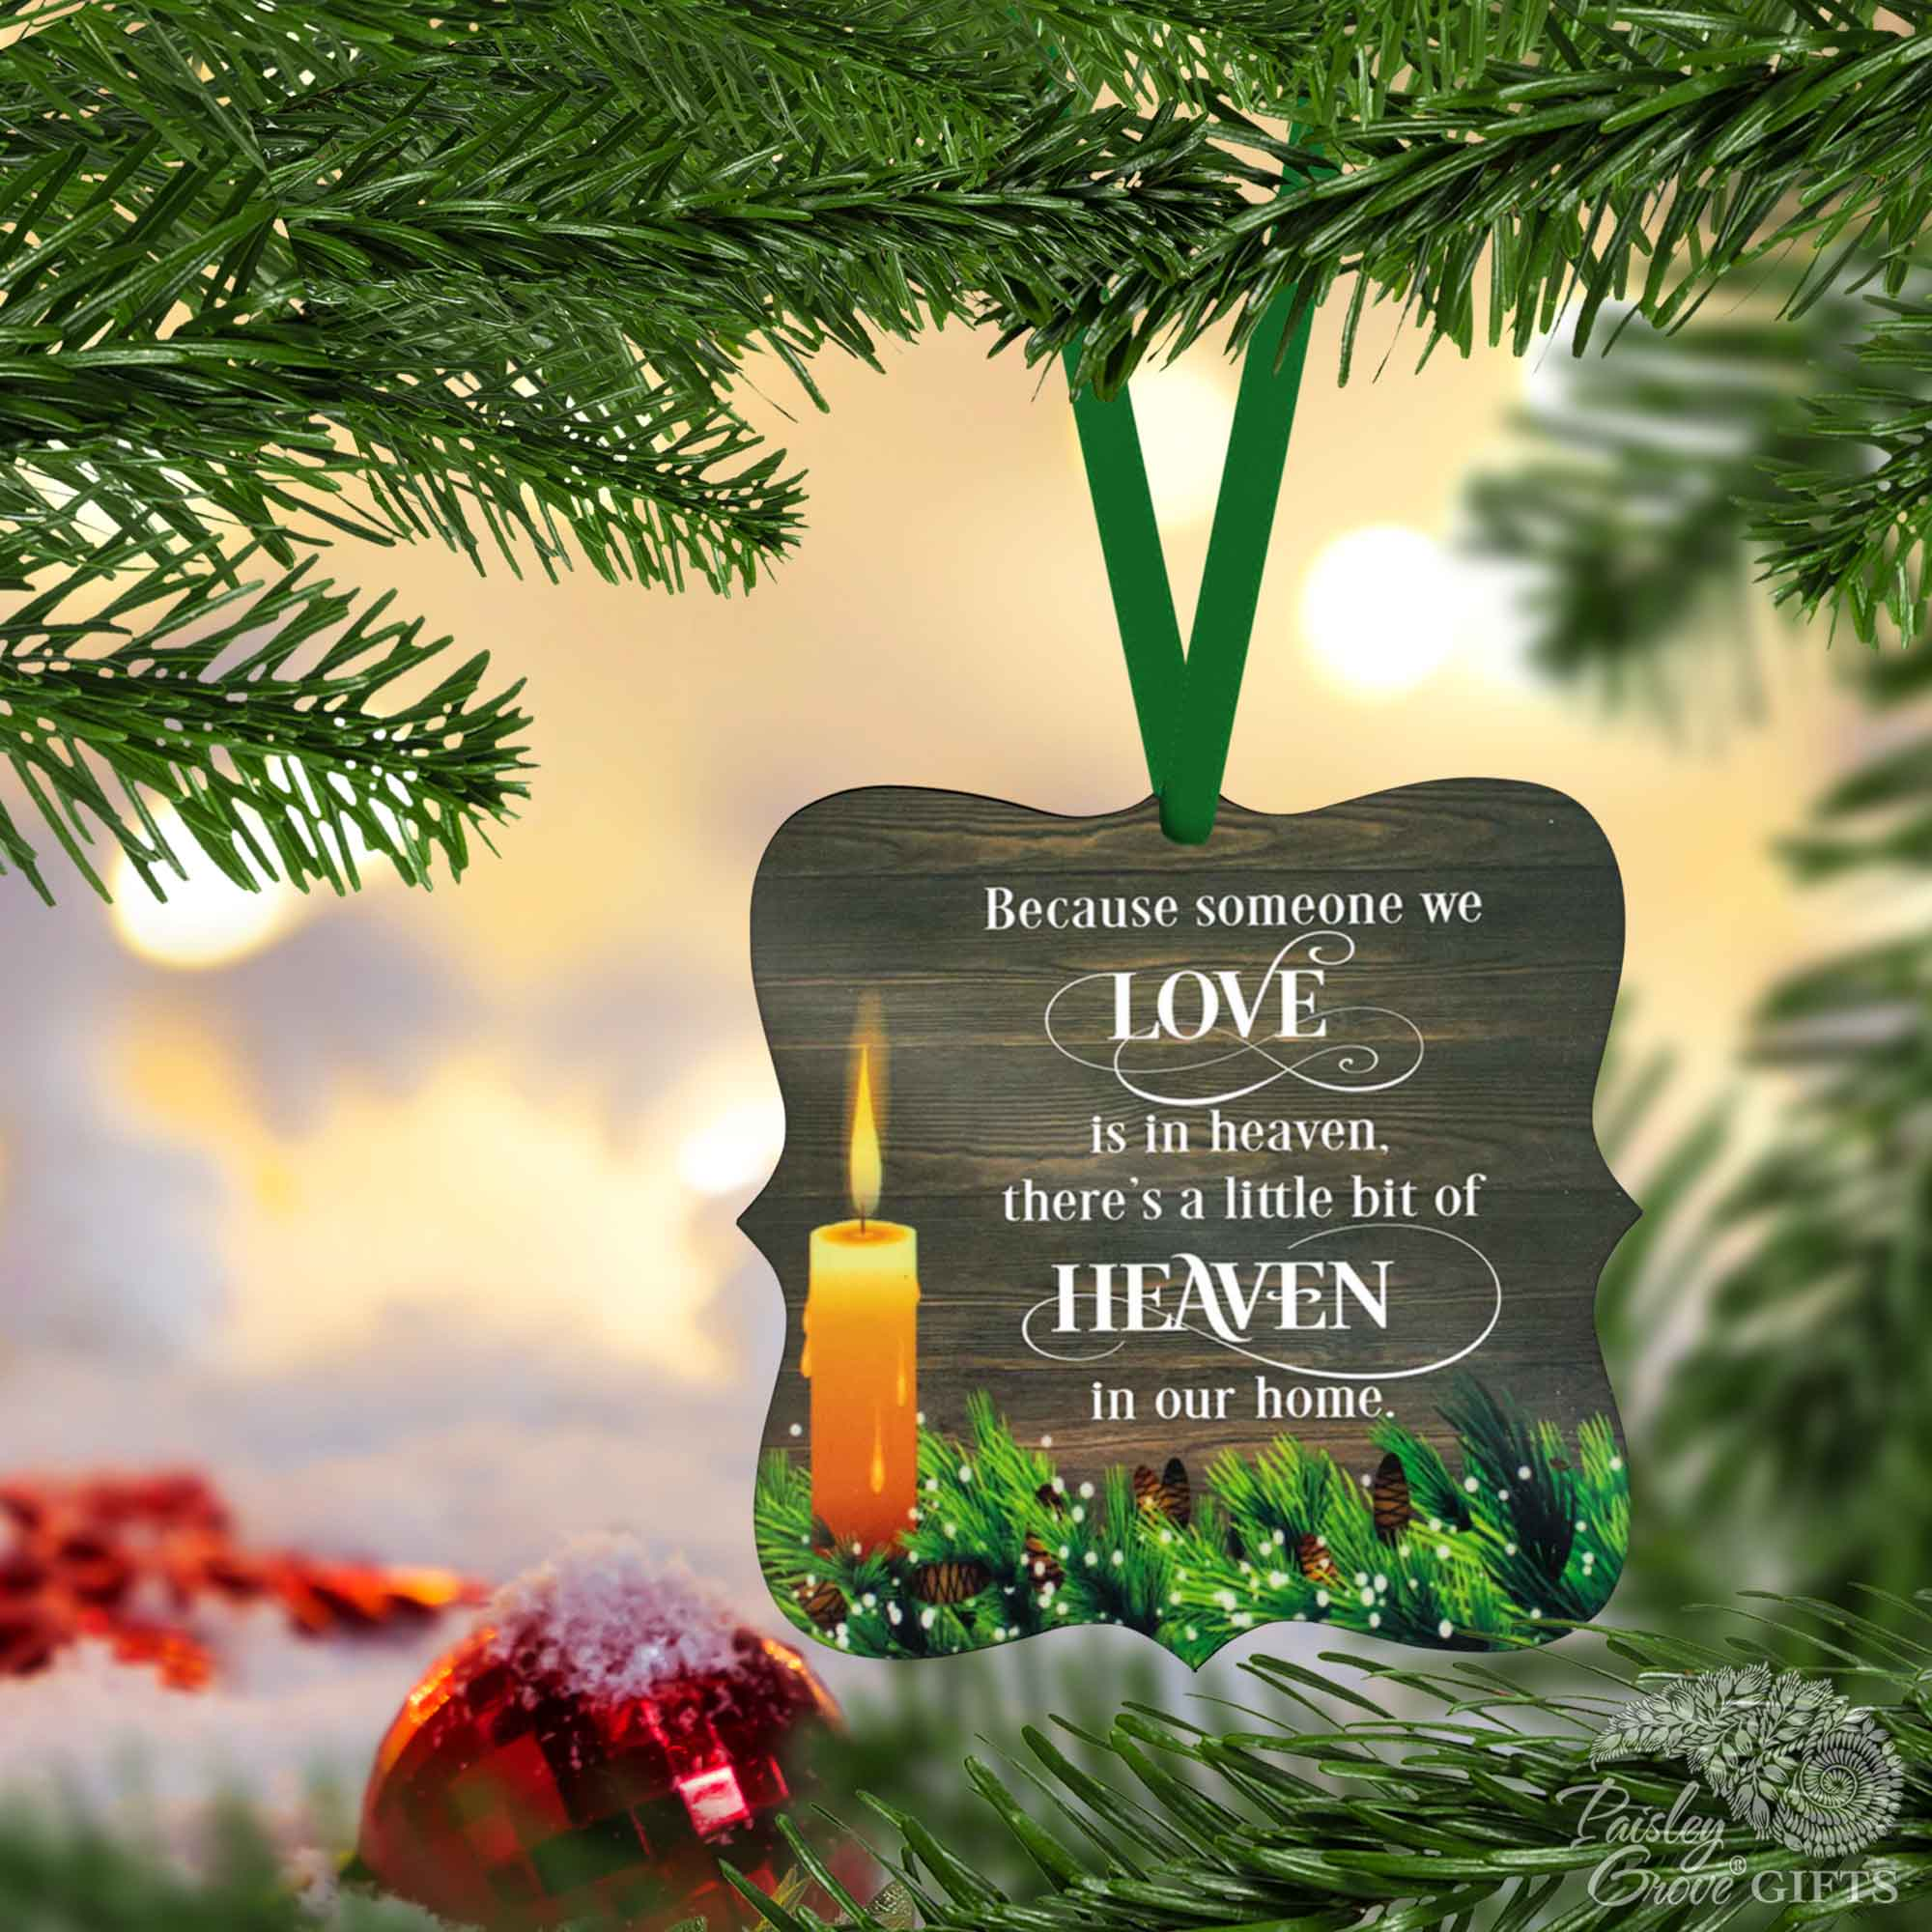 CopyrightPaisleyGroveGIFTS S508a Bereavement Christmas Ornament for Death of Loved One Holiday Decor